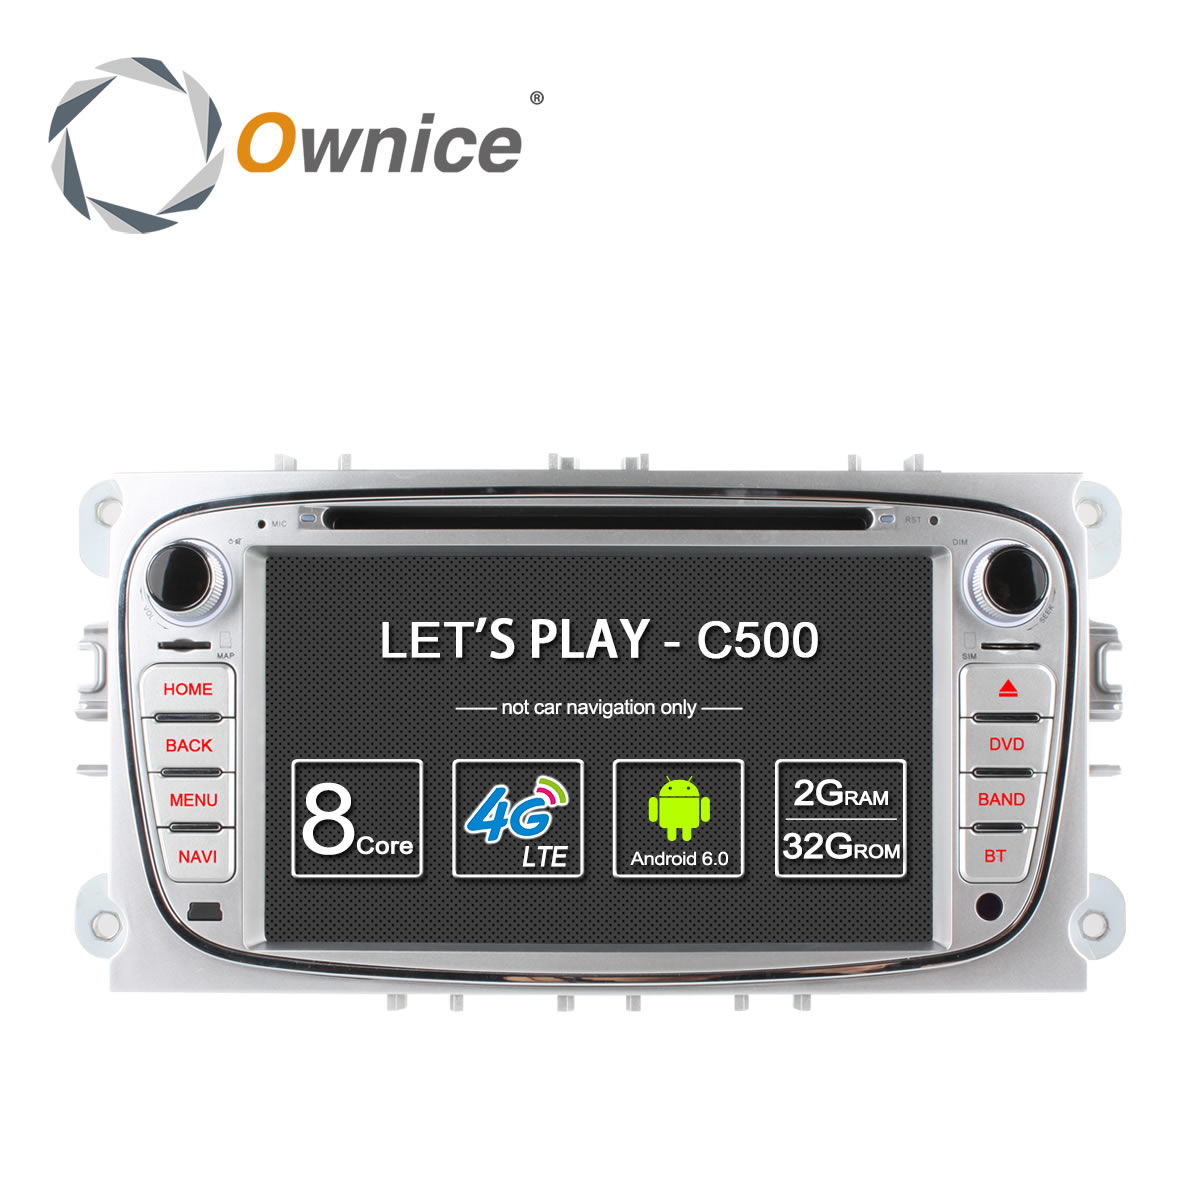 Ownice C500 4G LTE Android 6.0 Octa 8 Core Car DVD Player GPS For FORD Mondeo S-MAX Connect FOCUS 2 2008 2009 2010 2011 32G ROM ownice c500 4g sim lte octa 8 core android 6 0 for kia ceed 2013 2015 car dvd player gps navi radio wifi 4g bt 2gb ram 32g rom